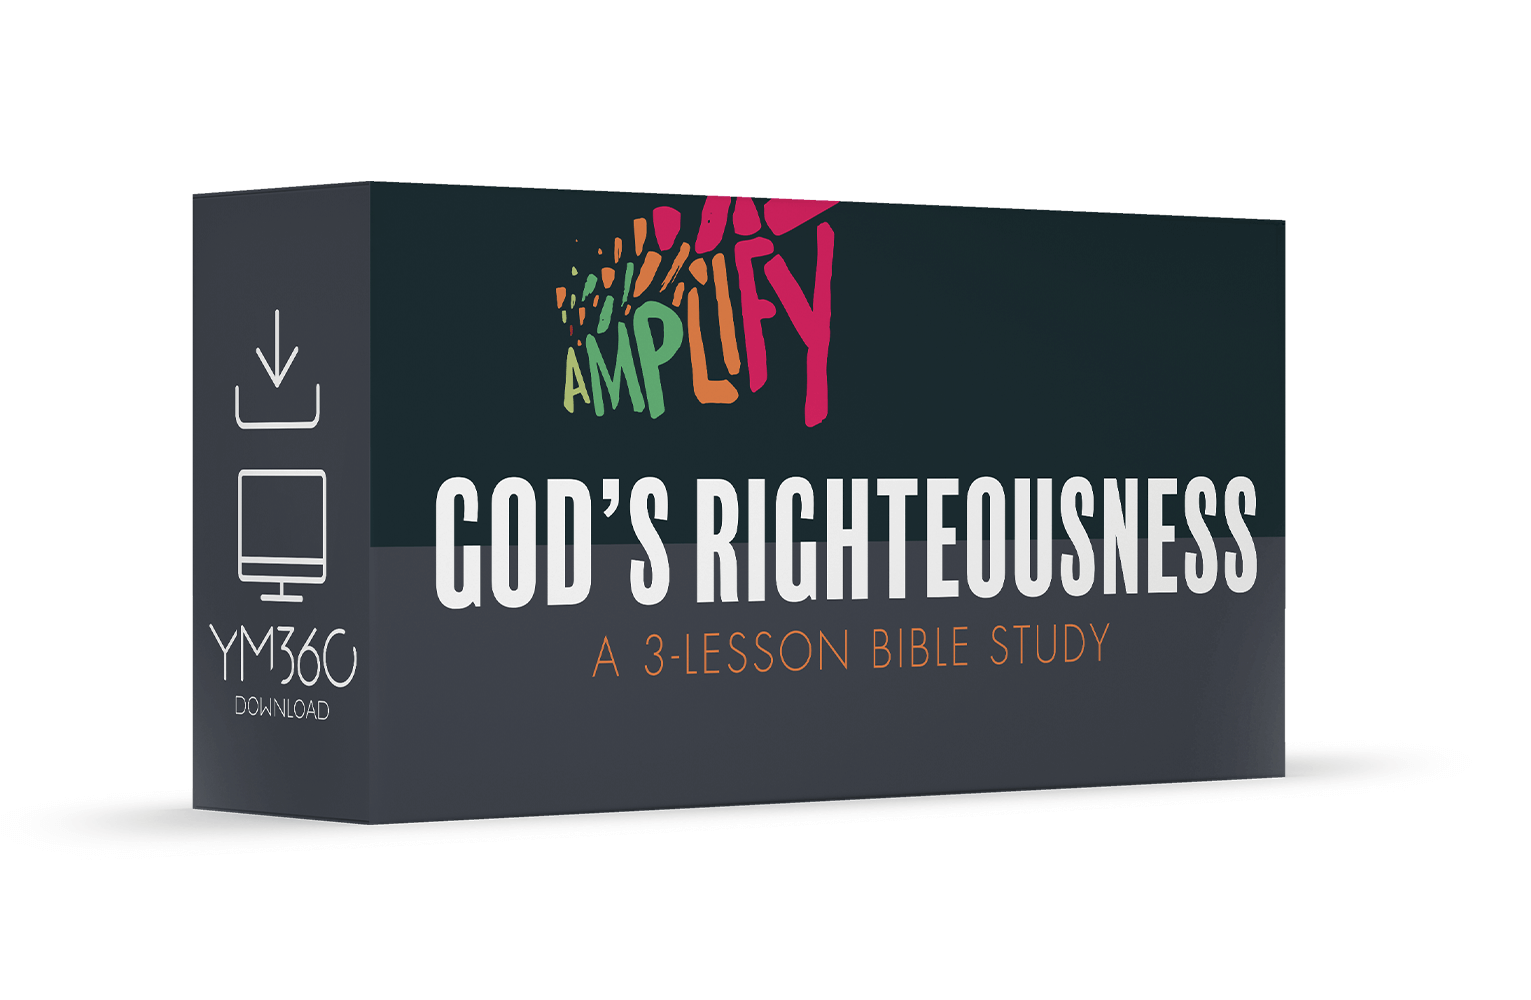 God's Righteousness: A 3-Lesson Bible Study